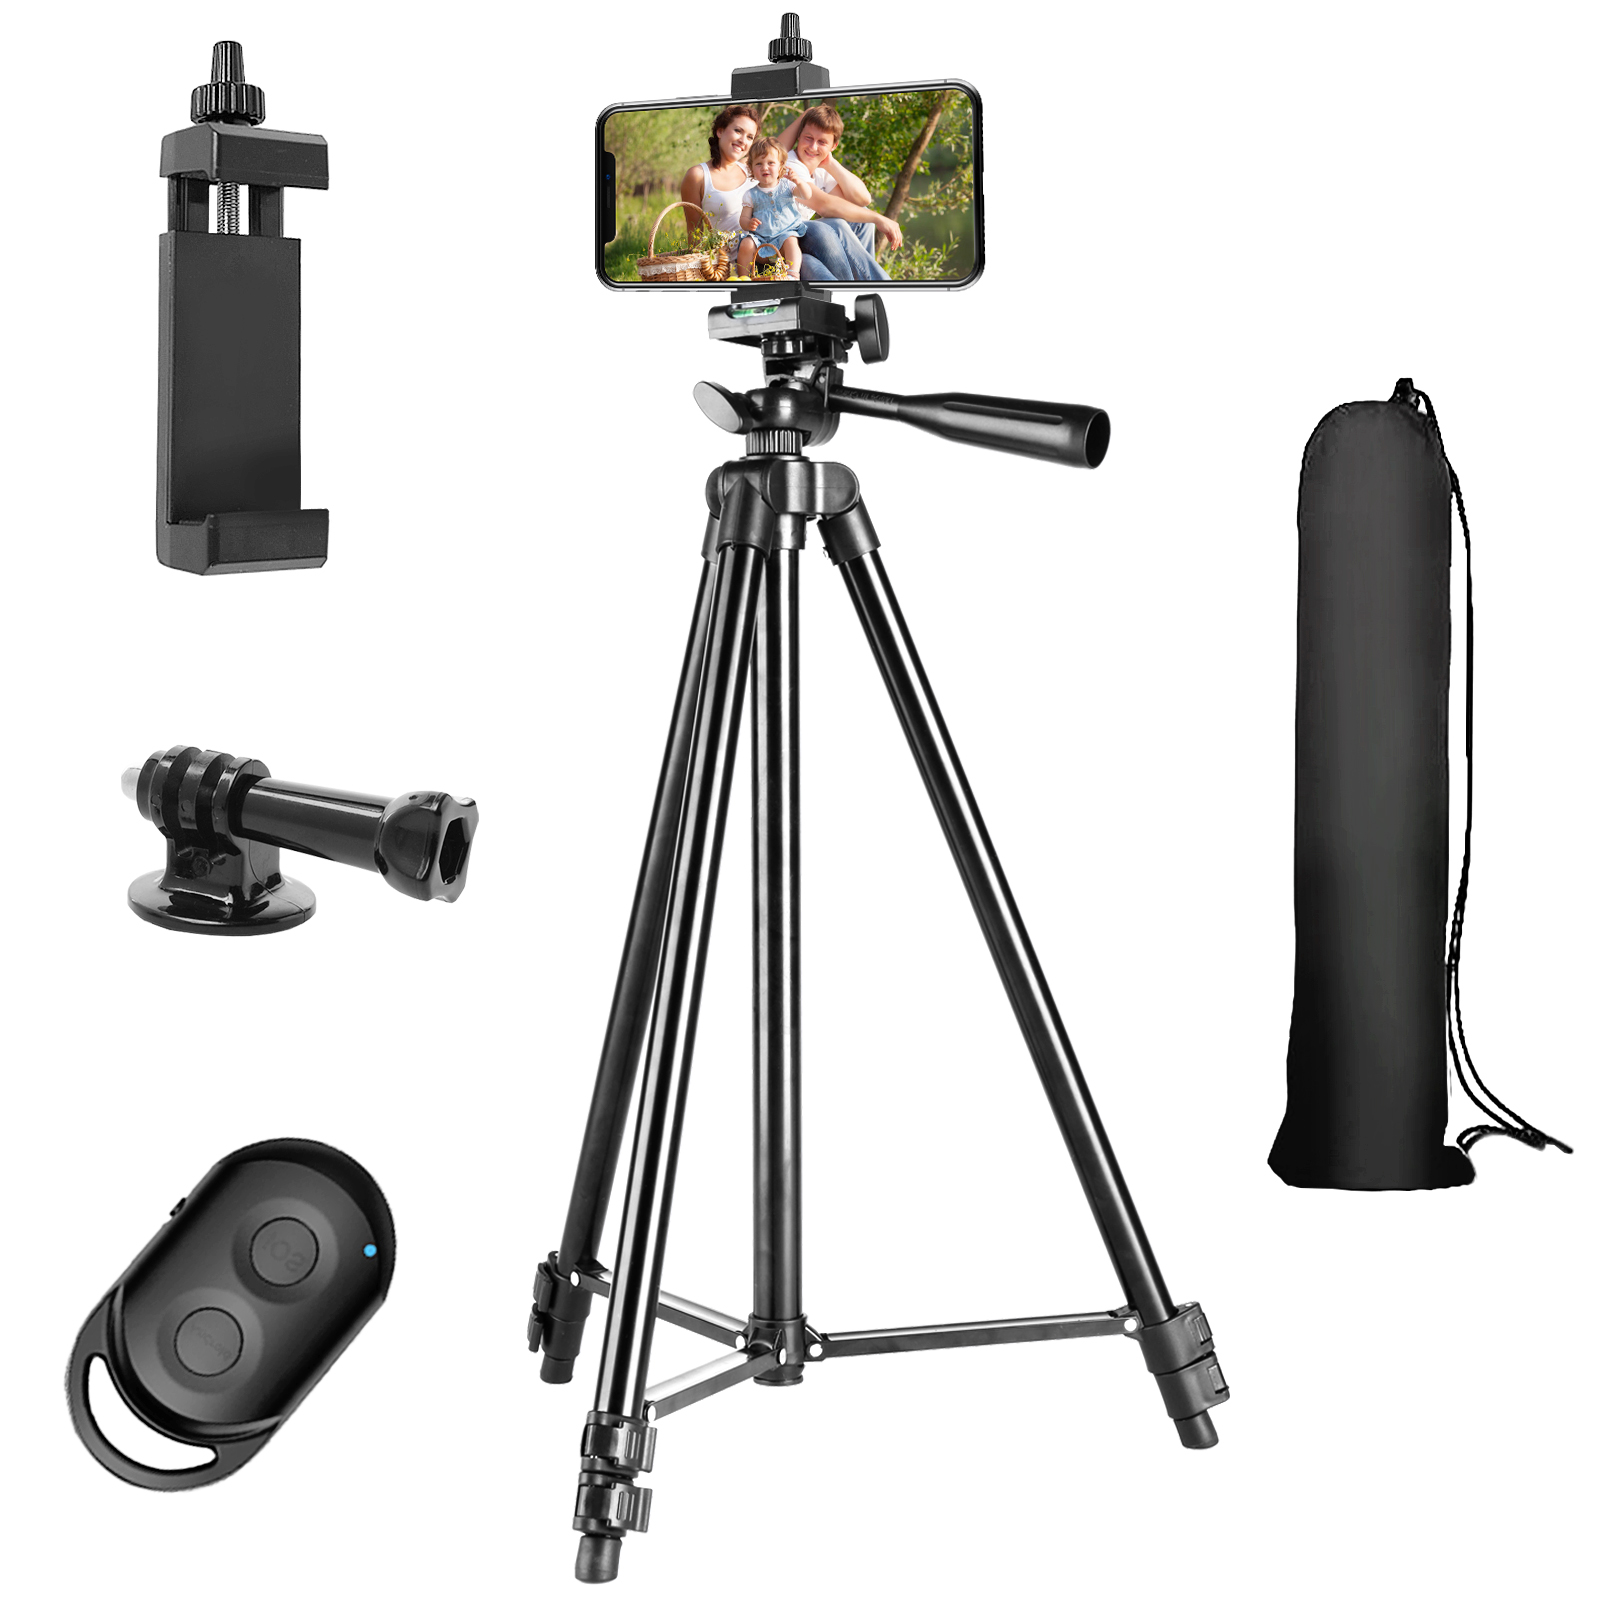 Mobile Phone Tripod Stretchable Lightweight Aluminum Mobile Stand Bluetooth Remote Control IPhone/Android and Camersuitable